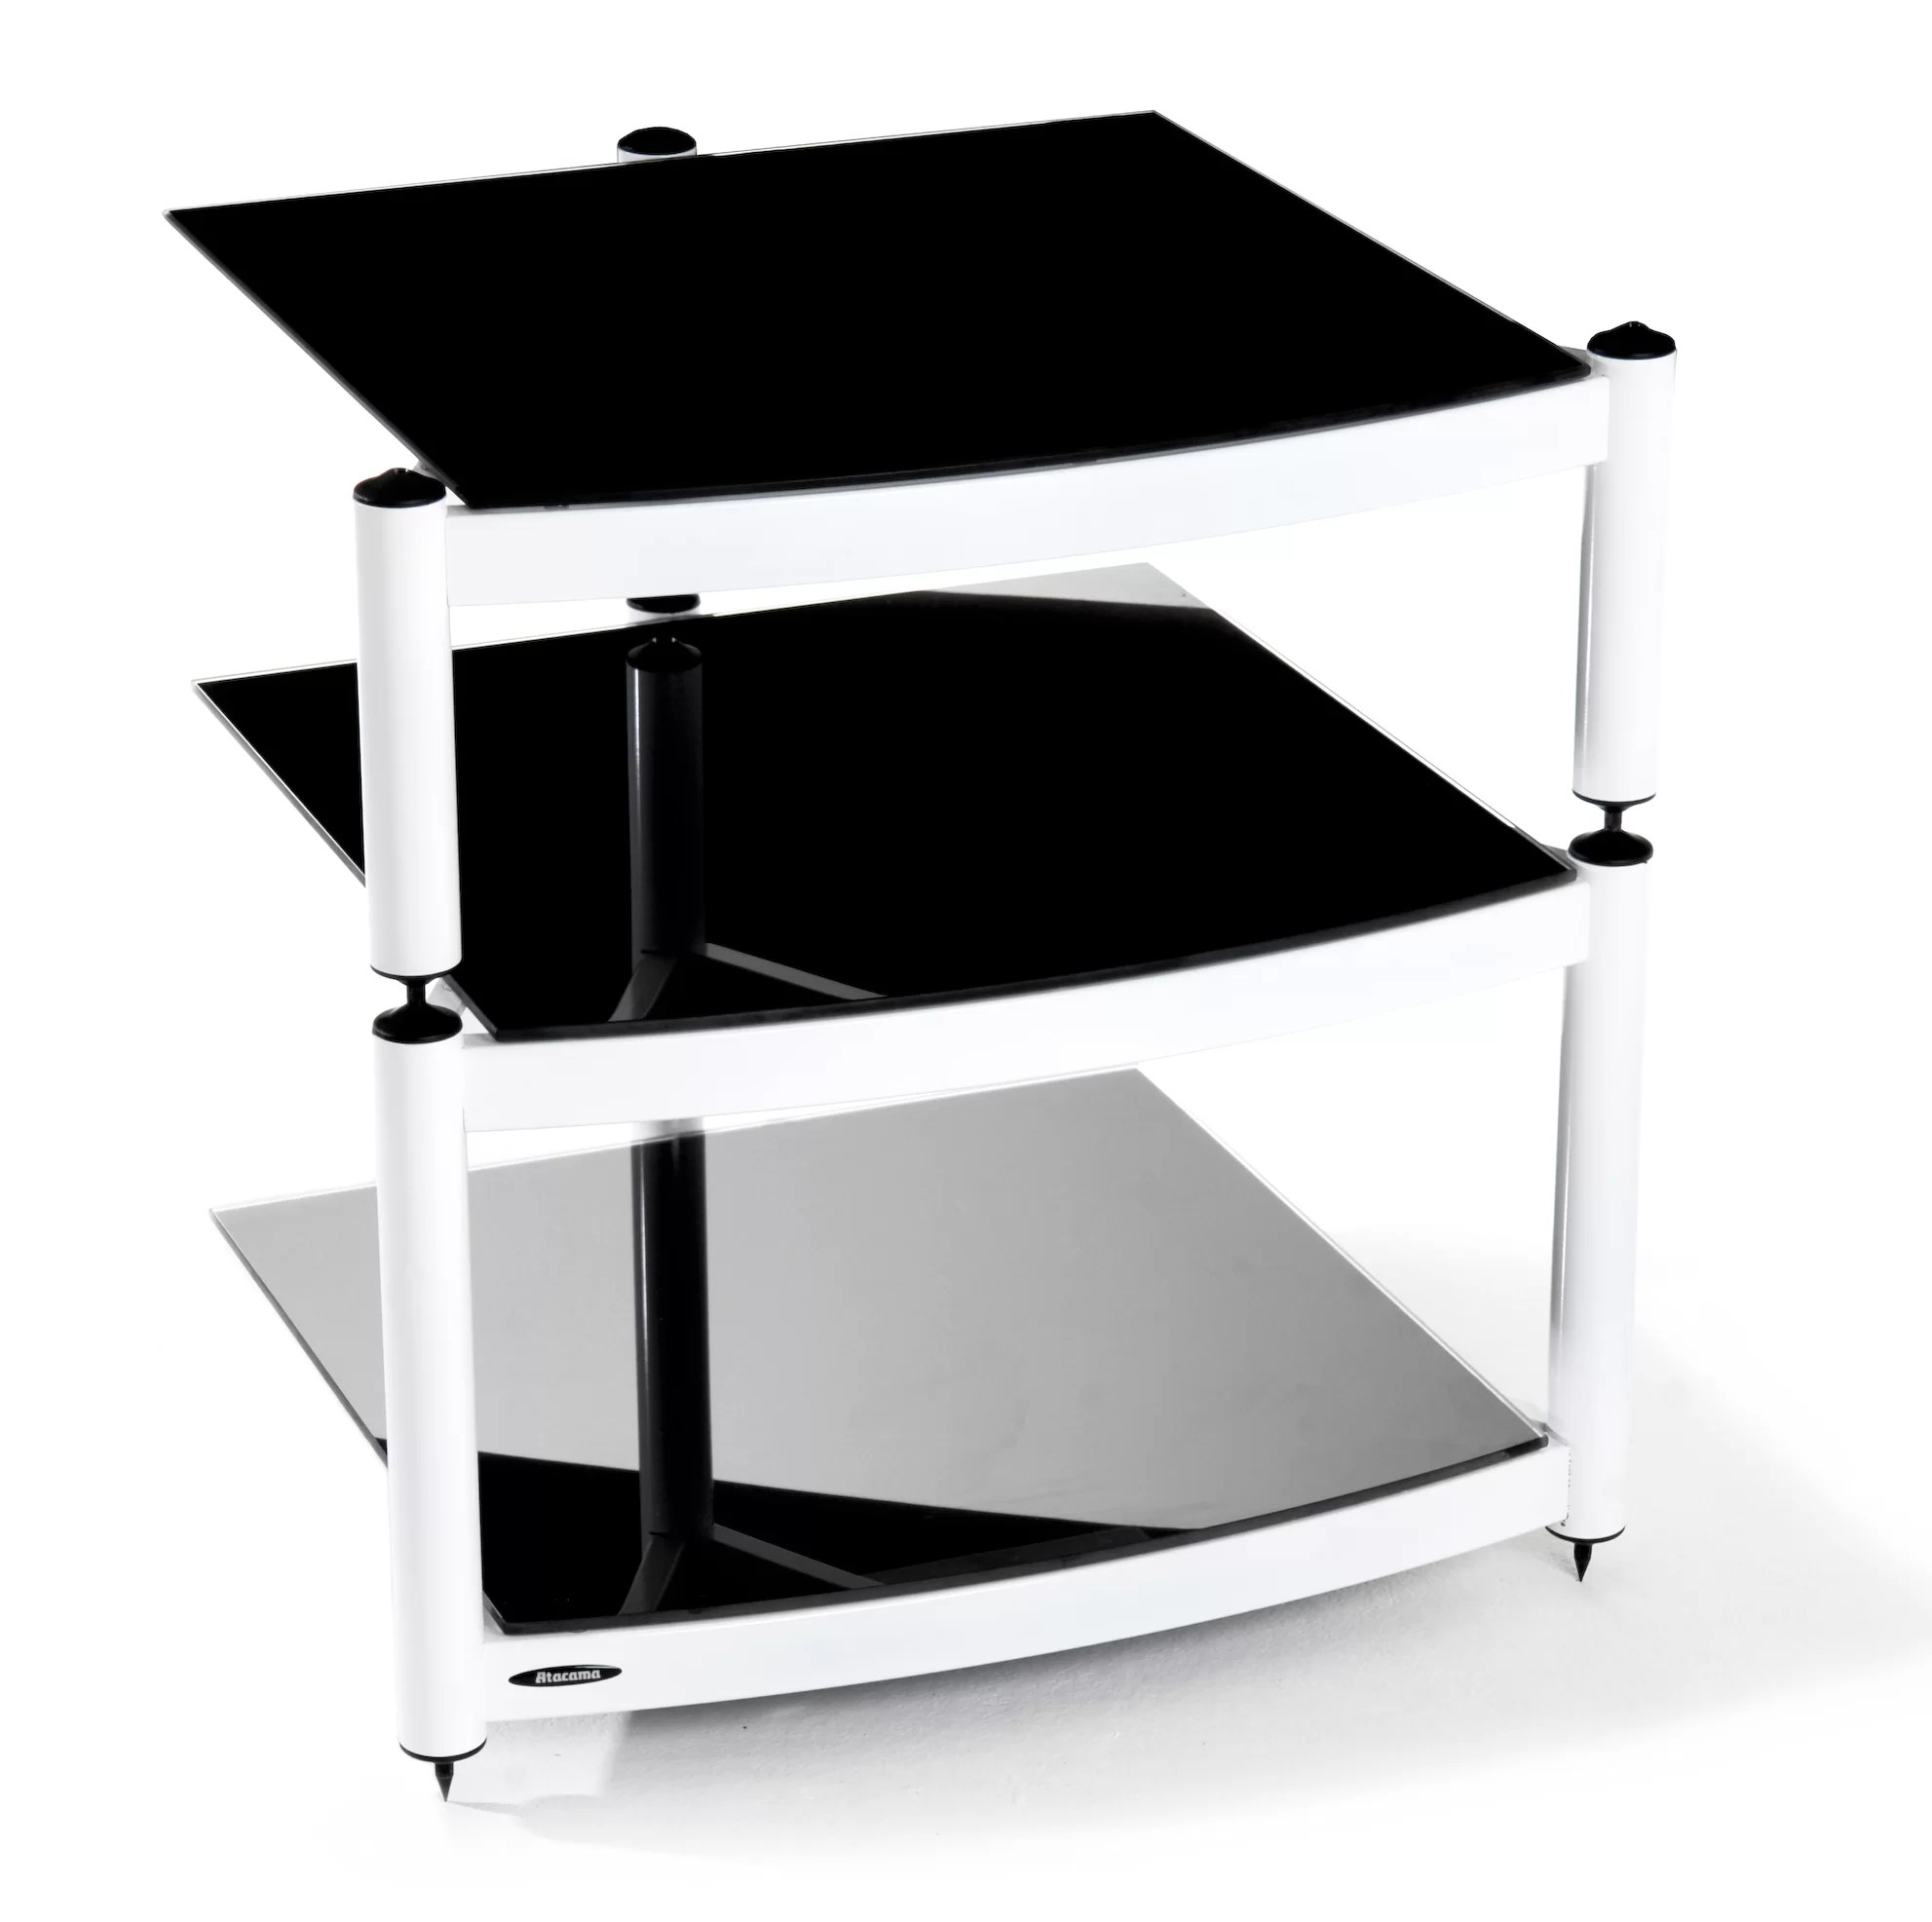 Atacama Hifi Rack Review Aley Hifi Rack